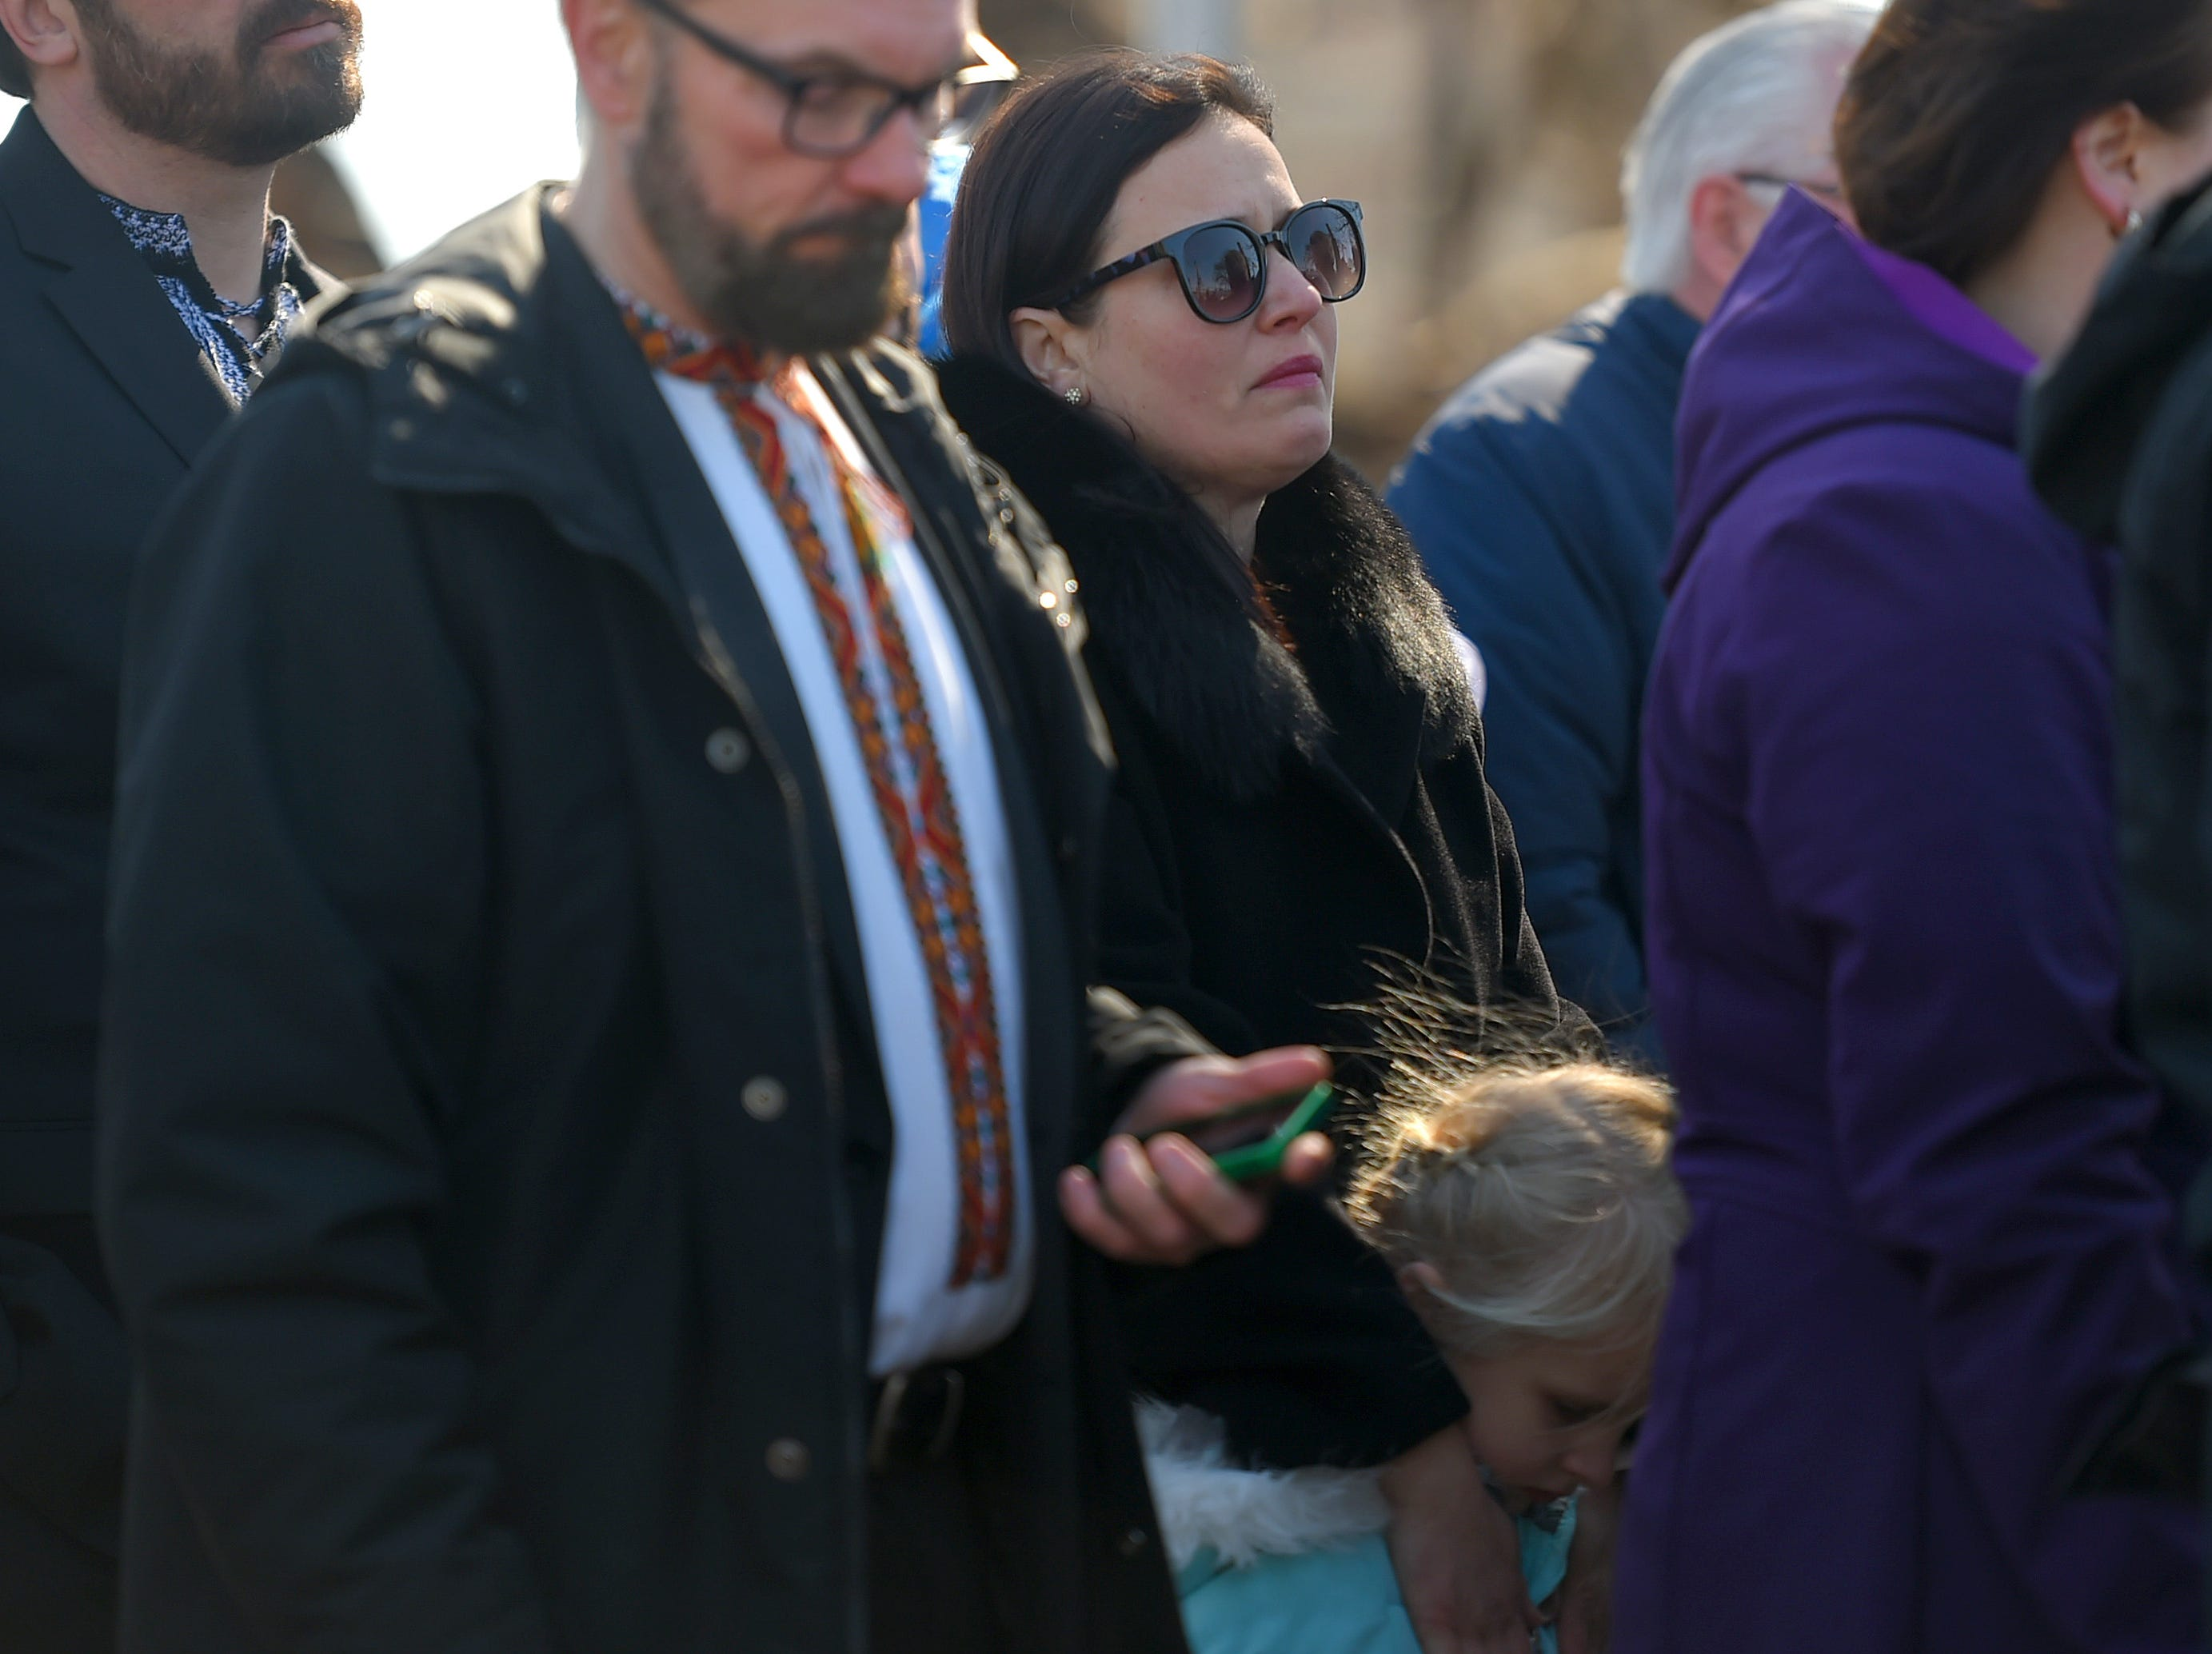 The family and friends of Maria Zobniw during the memorial service marking the tenth anniversary of the American Civic Association tragedy. Zobniw was among the 13 people killed during the mass shooting. April 3, 2019.